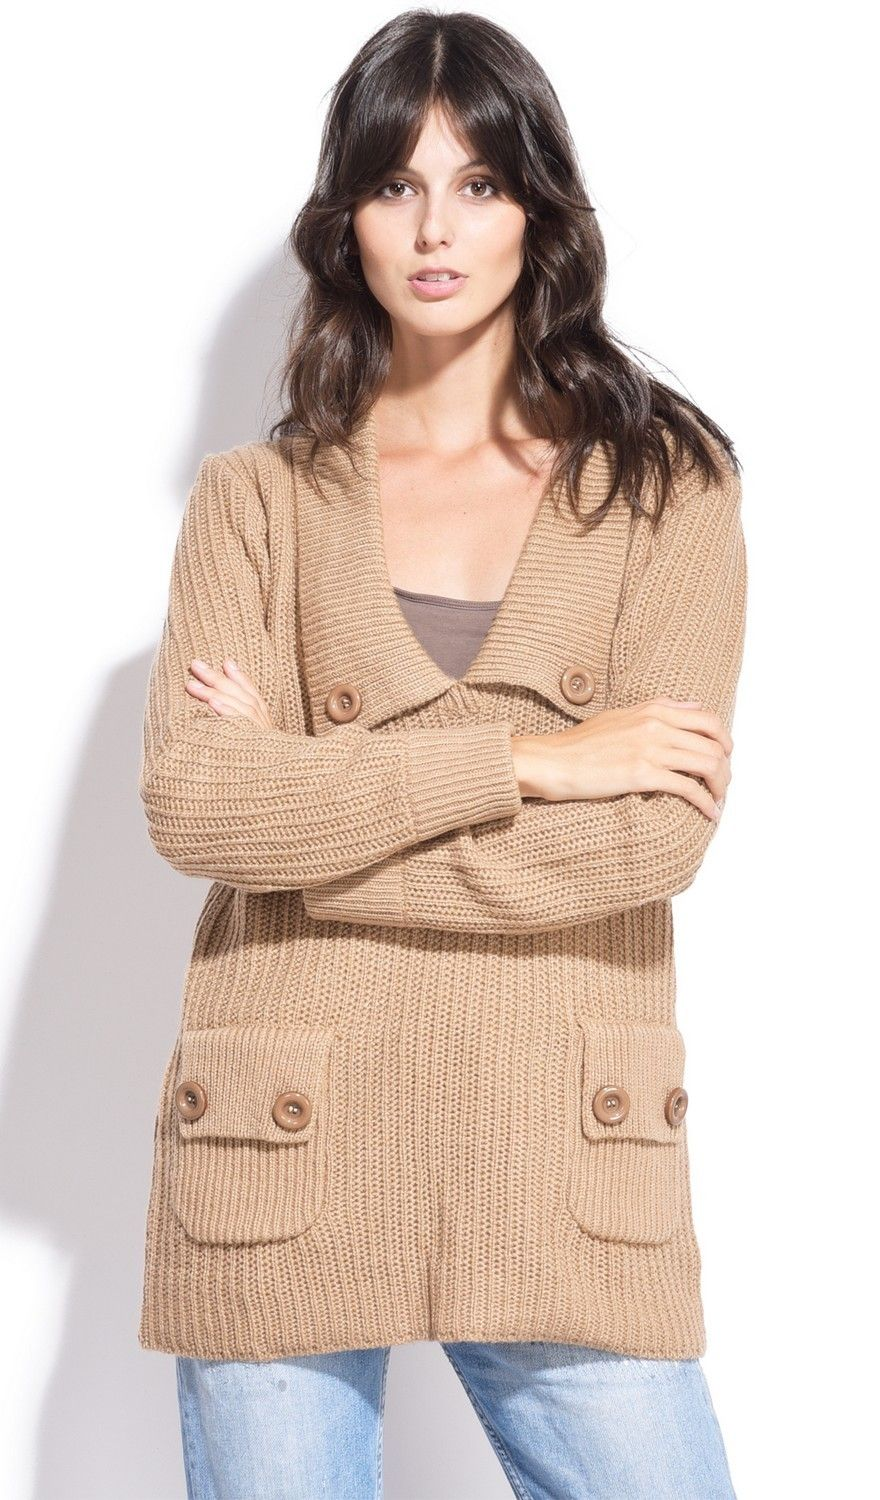 Assuili Buttoned Collar Sweater with Pockets in Beige